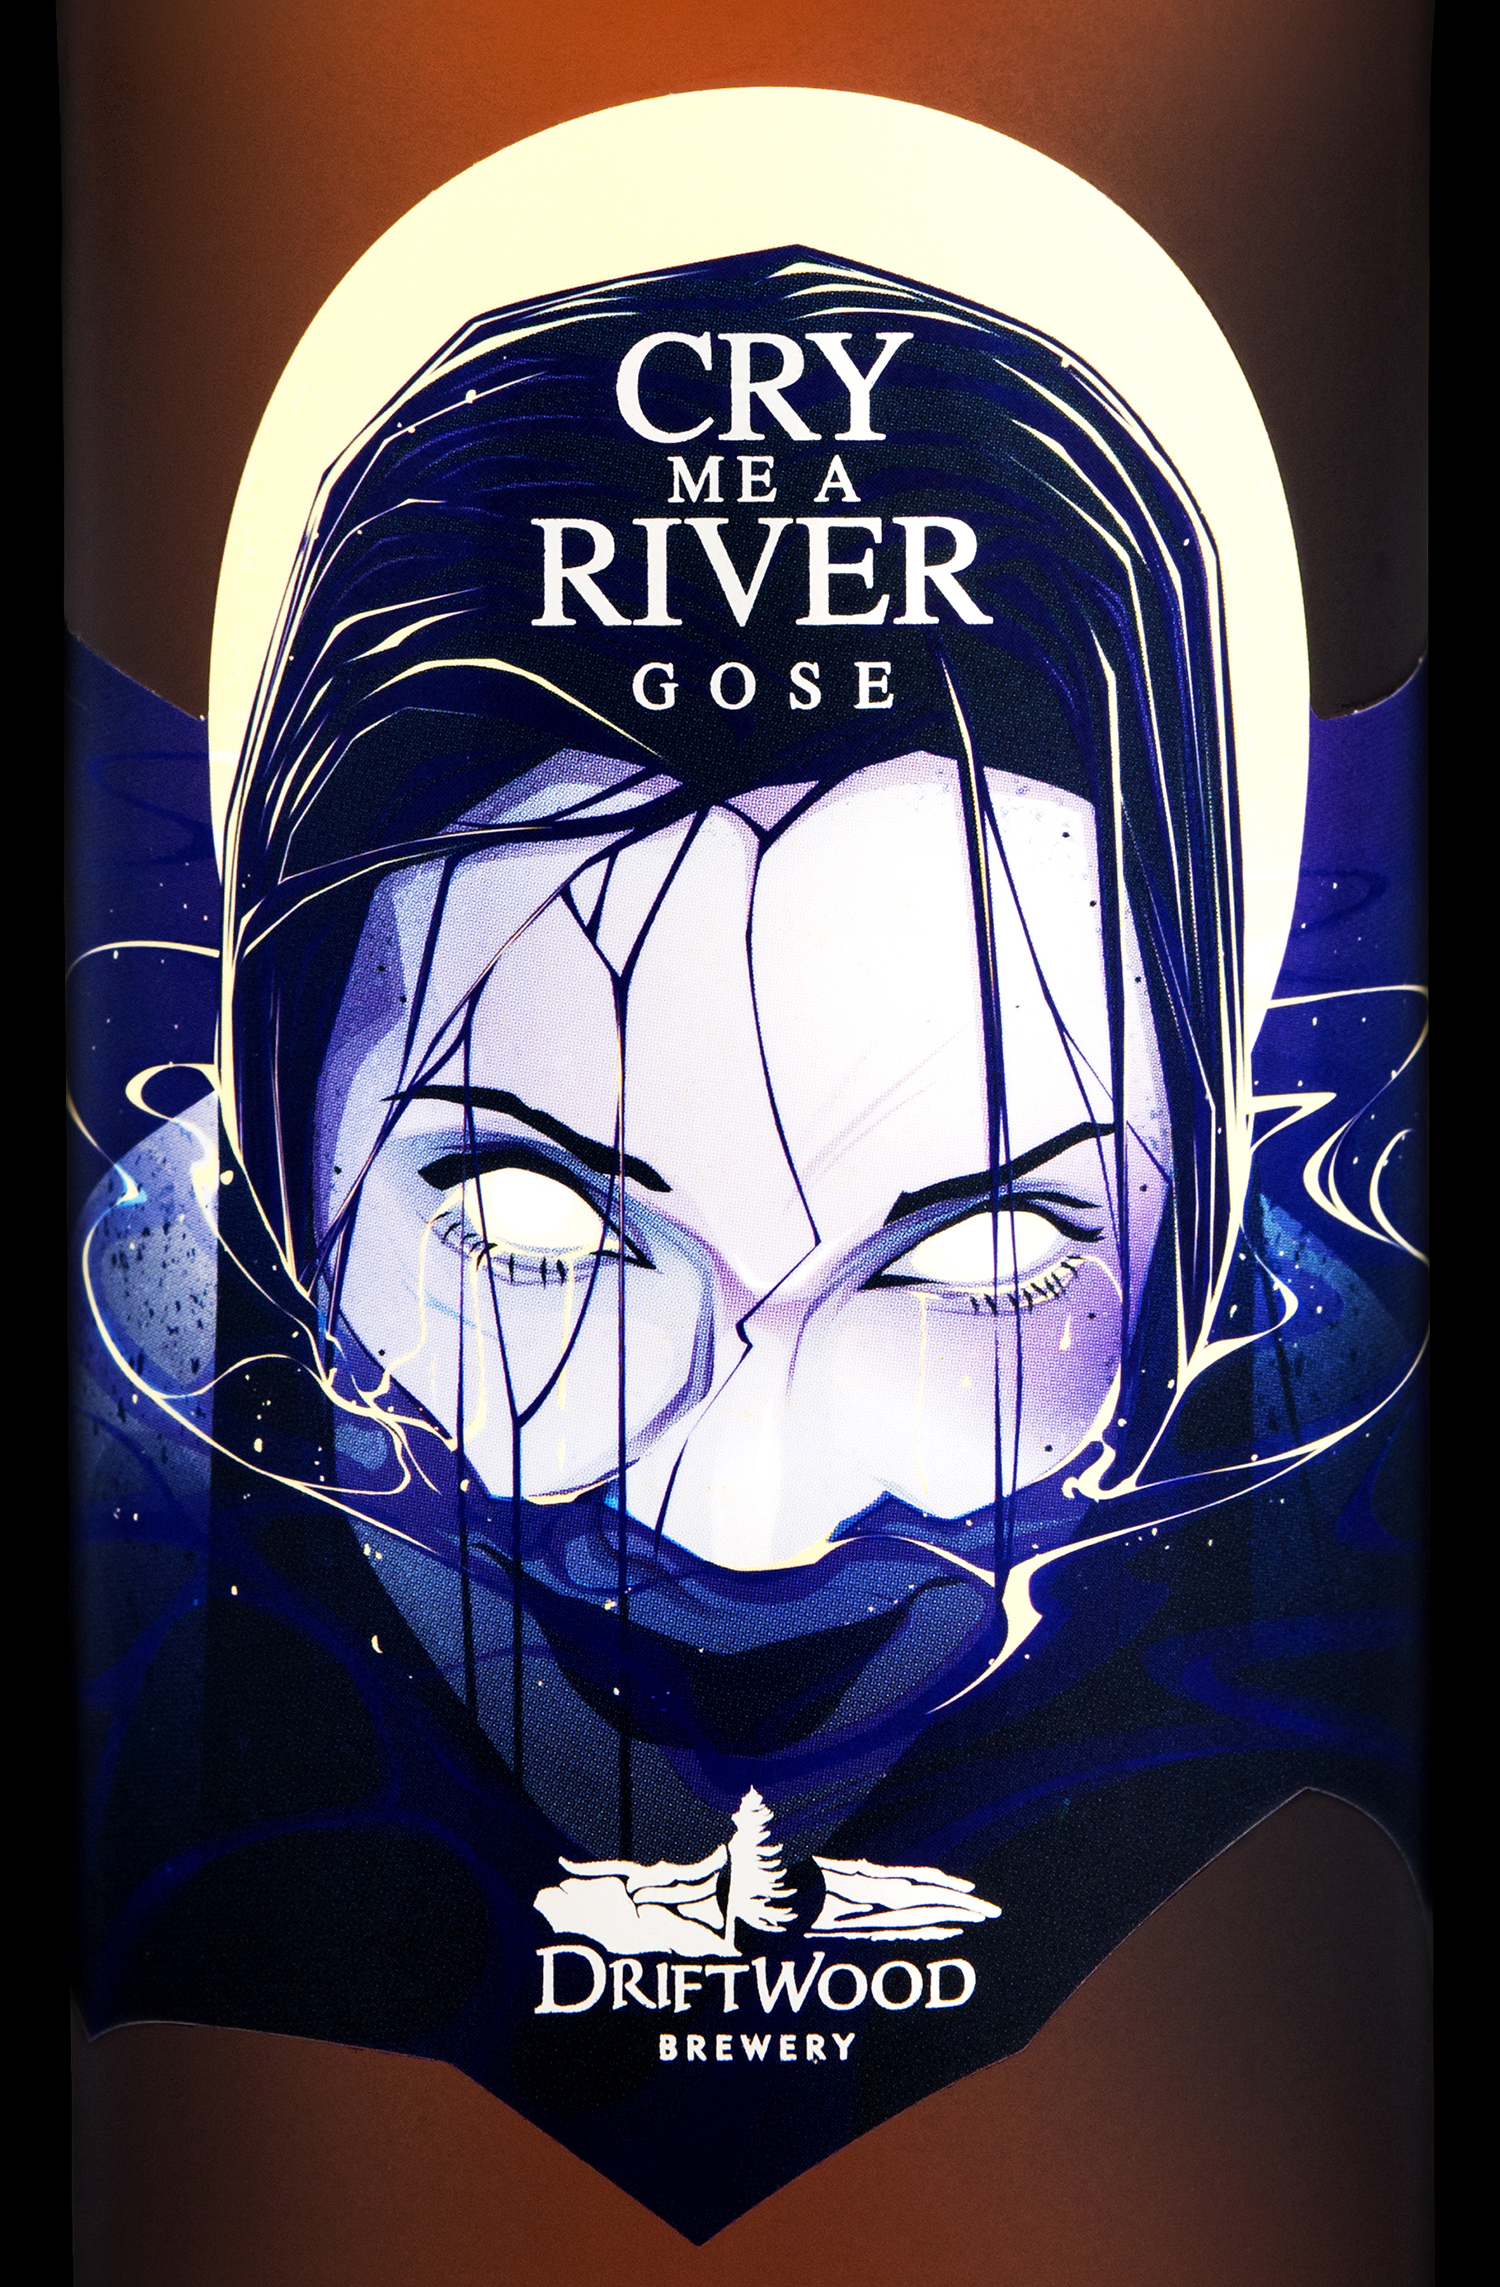 Packaging Design for Driftwood Brewery's Cry Me A River Gose